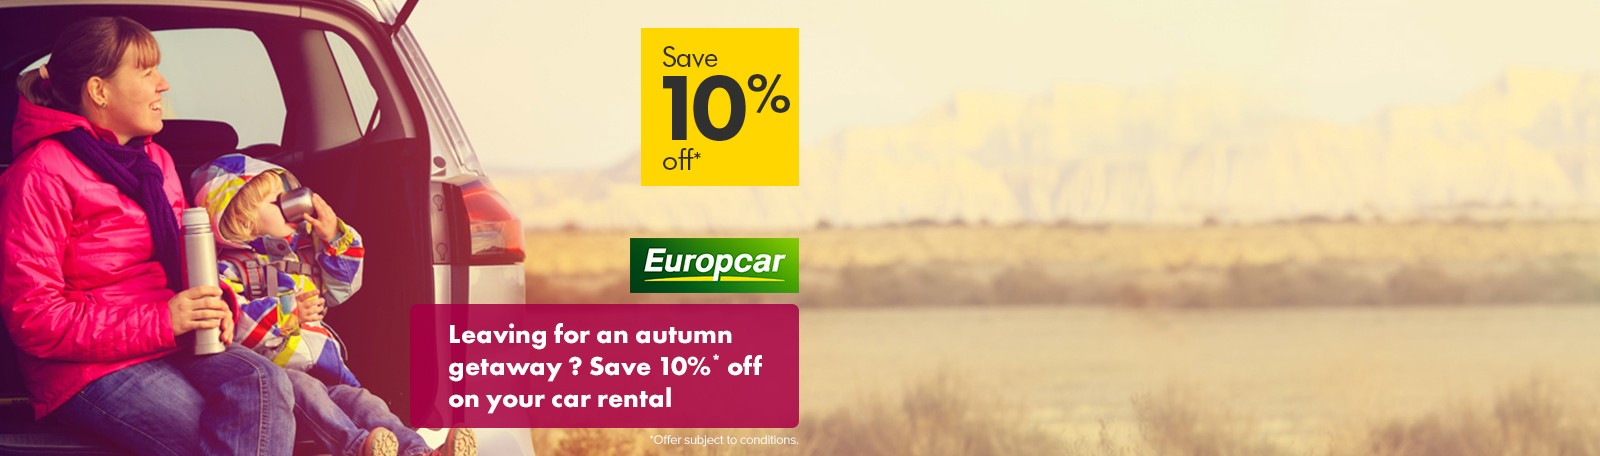 Europcar winter offer 10% discount